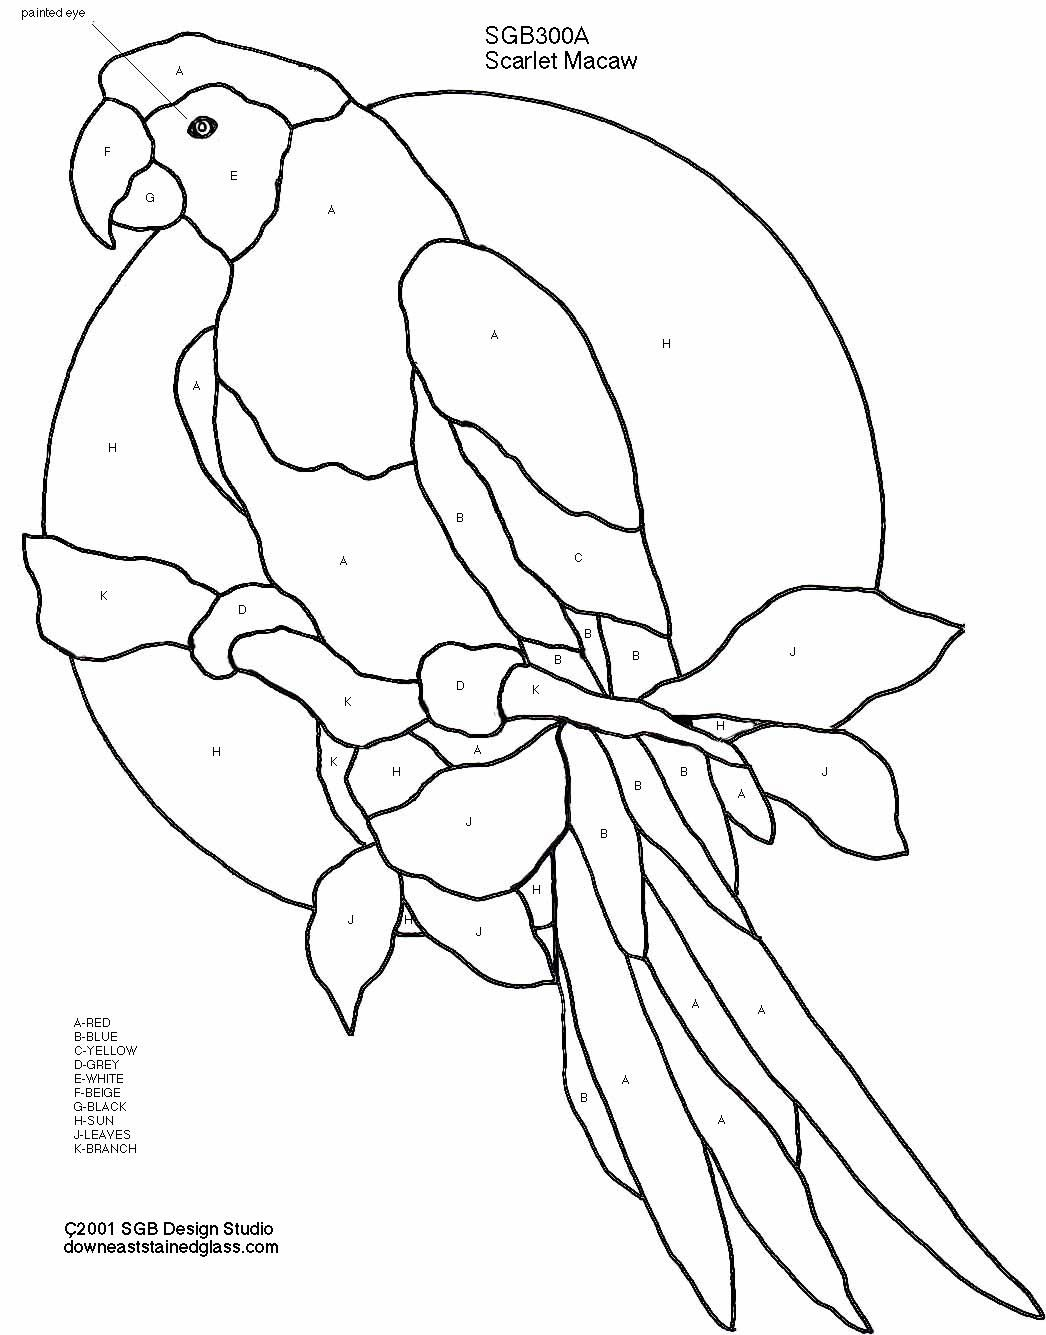 Stained glass butterfly coloring pages - Free Stained Glass Pattern Image Directory